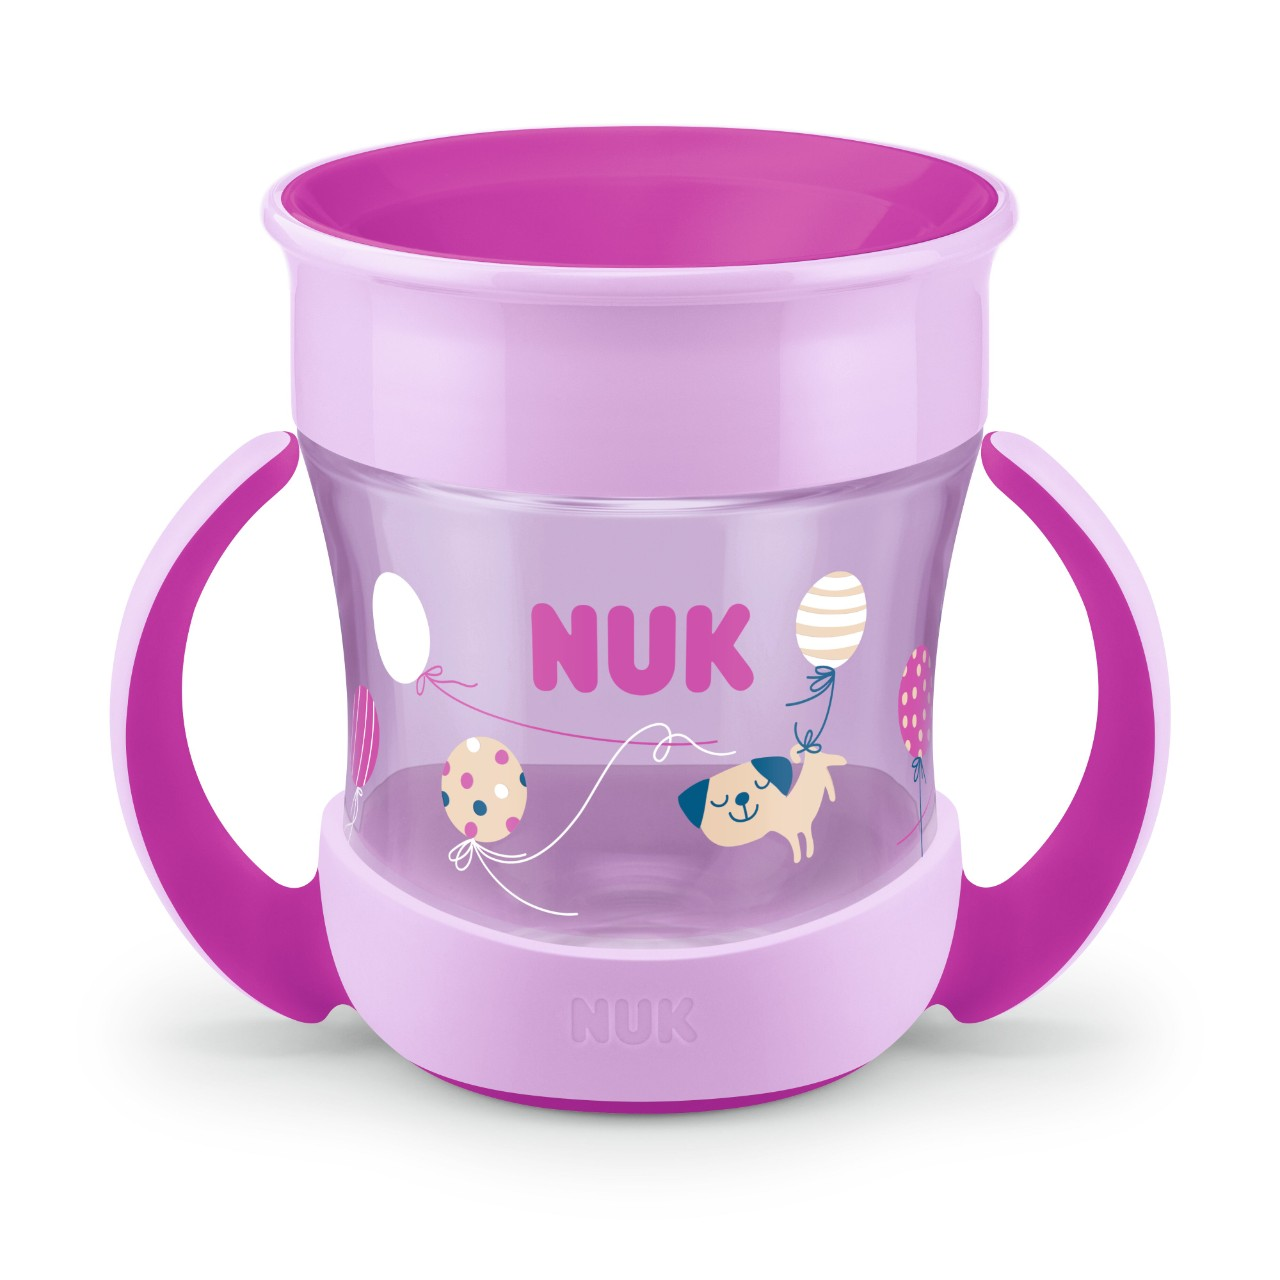 NUK Mini Magic Cup, Růžový